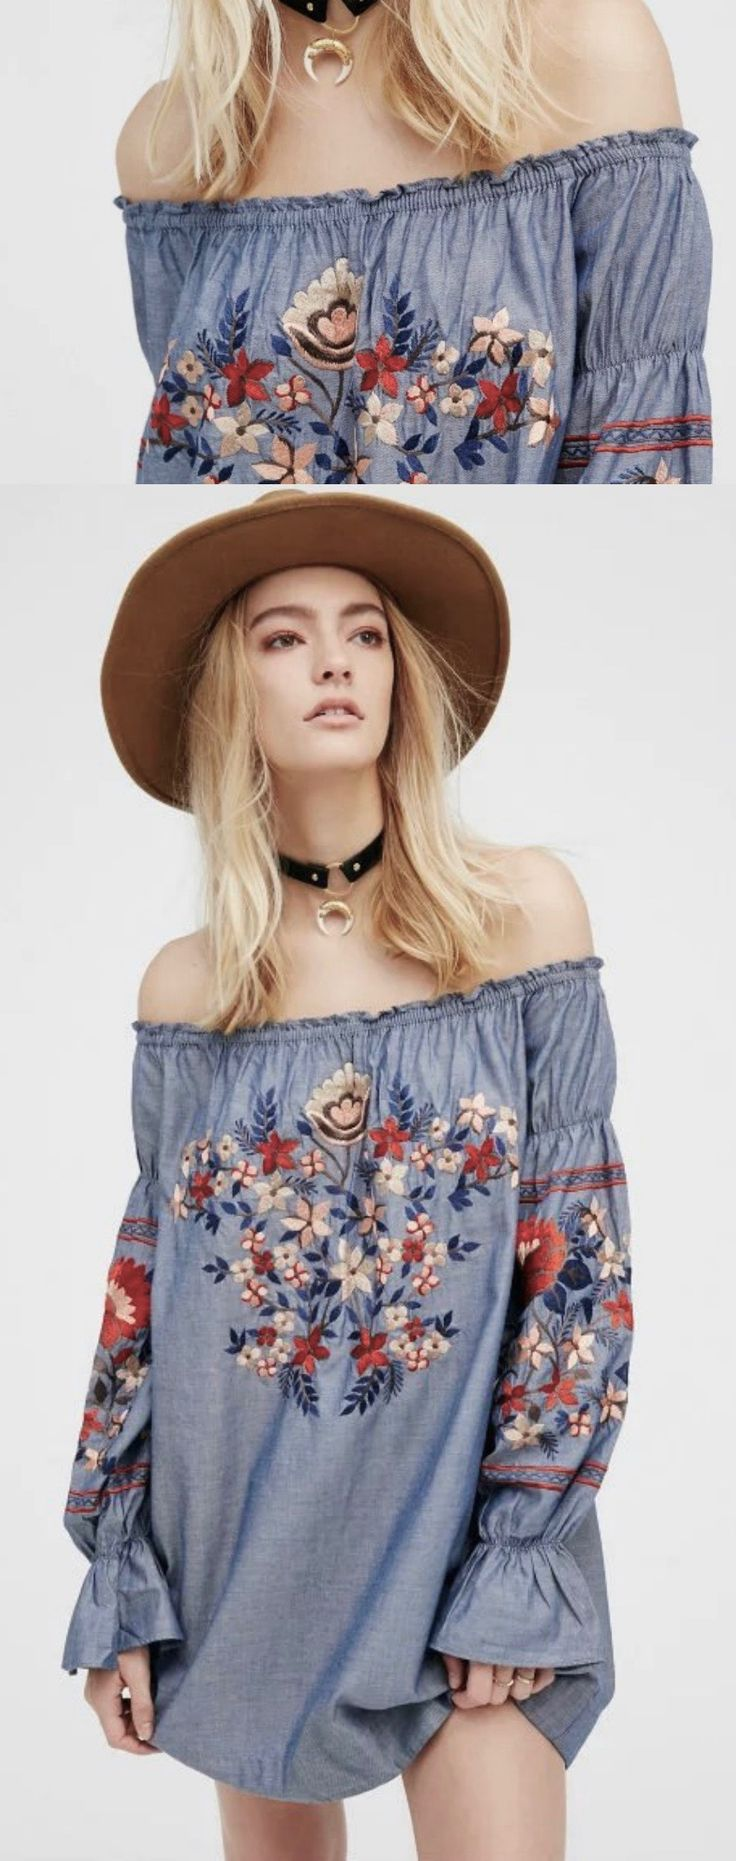 ❤️ A Boho Embroidery Tunic Dress is now available at $45 from Pasaboho. This off shoulder tunic exhibit unique design with floral embroidered patterns. ❤️ Available for Wholesale and Retail. :: boho fashion :: gypsy style :: hippie chic :: boho chic :: outfit ideas :: boho clothing :: free spirit :: fashion trend :: embroidered :: flowers :: floral :: lace :: summer :: fabulous :: love :: street style :: fashion style :: boho style :: bohemian :: modern :: tribal :: boho bag :: embroidery…